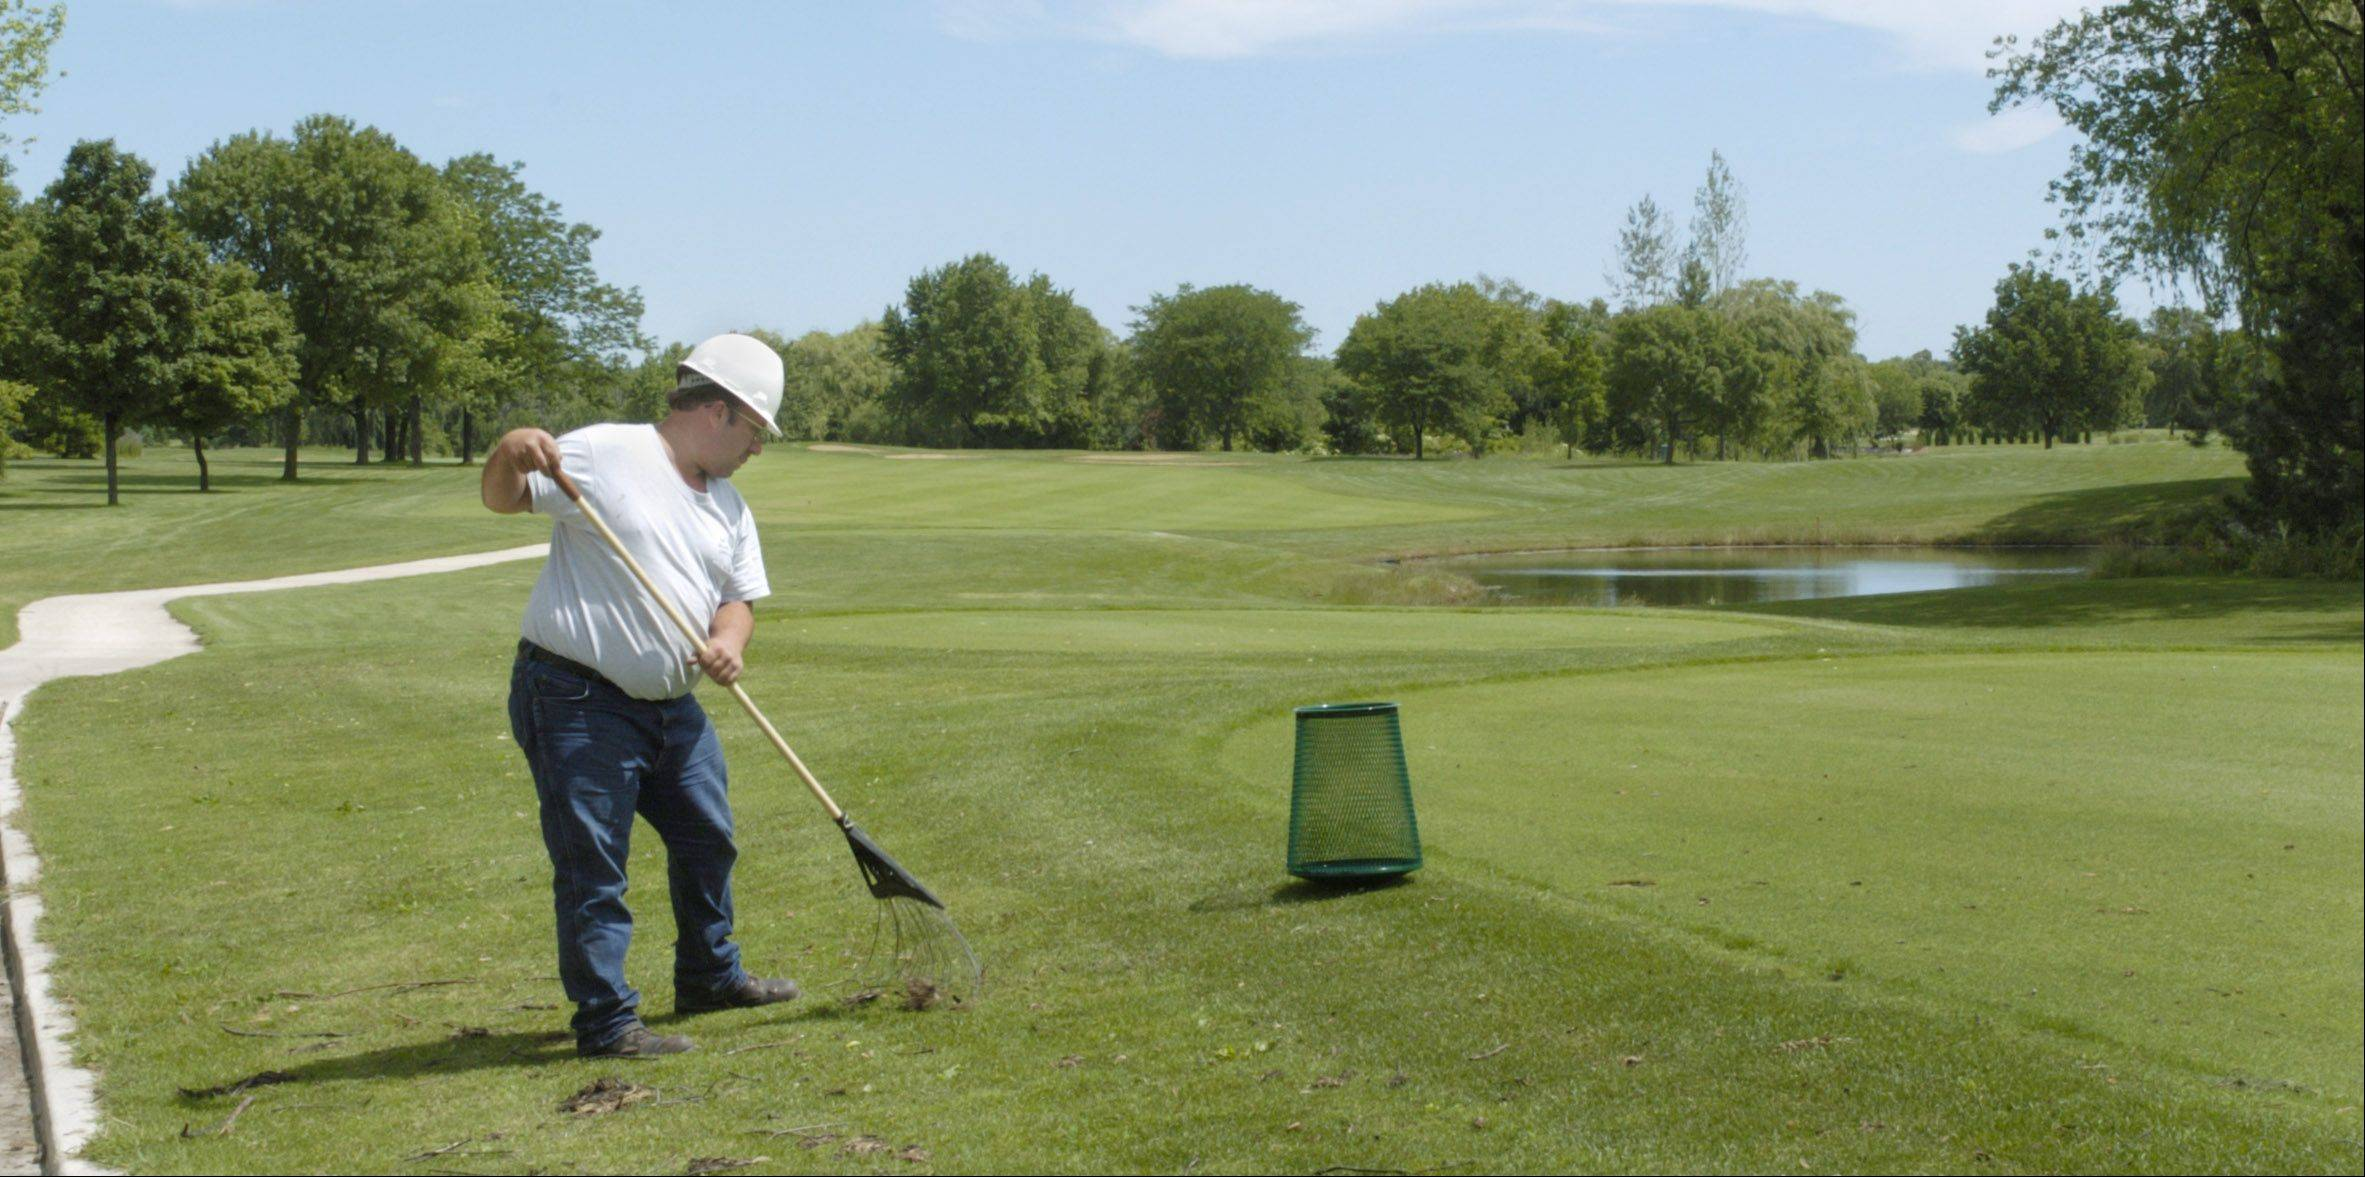 A $6.3 million renovation project at the Village Links of Glen Ellyn could take longer to complete than expected, officials said Monday. The 18-hole course last underwent renovations in 2004.